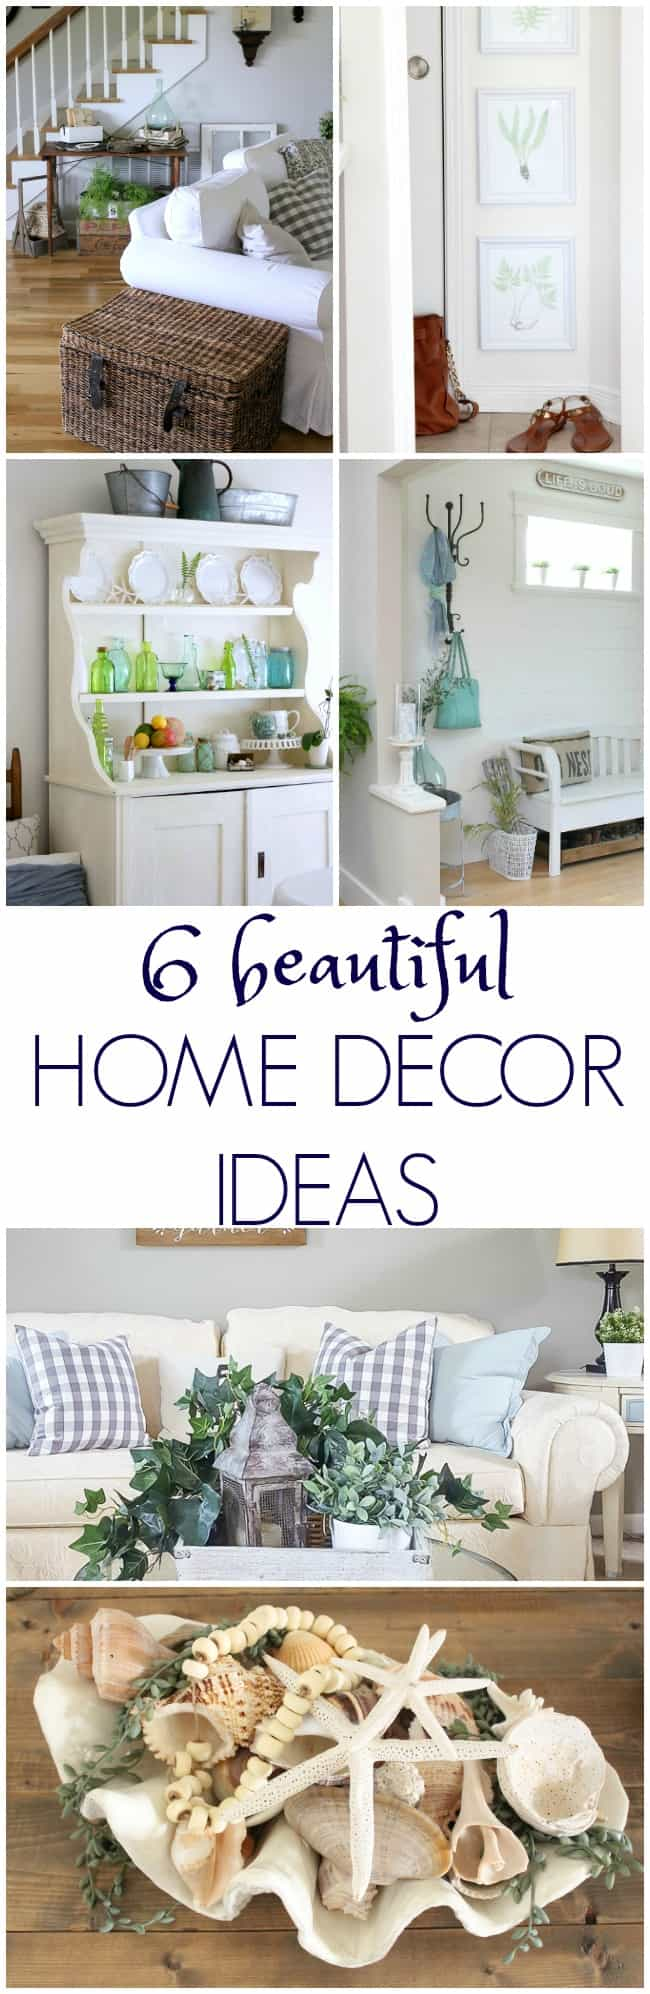 BEAUTIFUL HOME DECOR IDEAS - PLACE OF MY TASTE